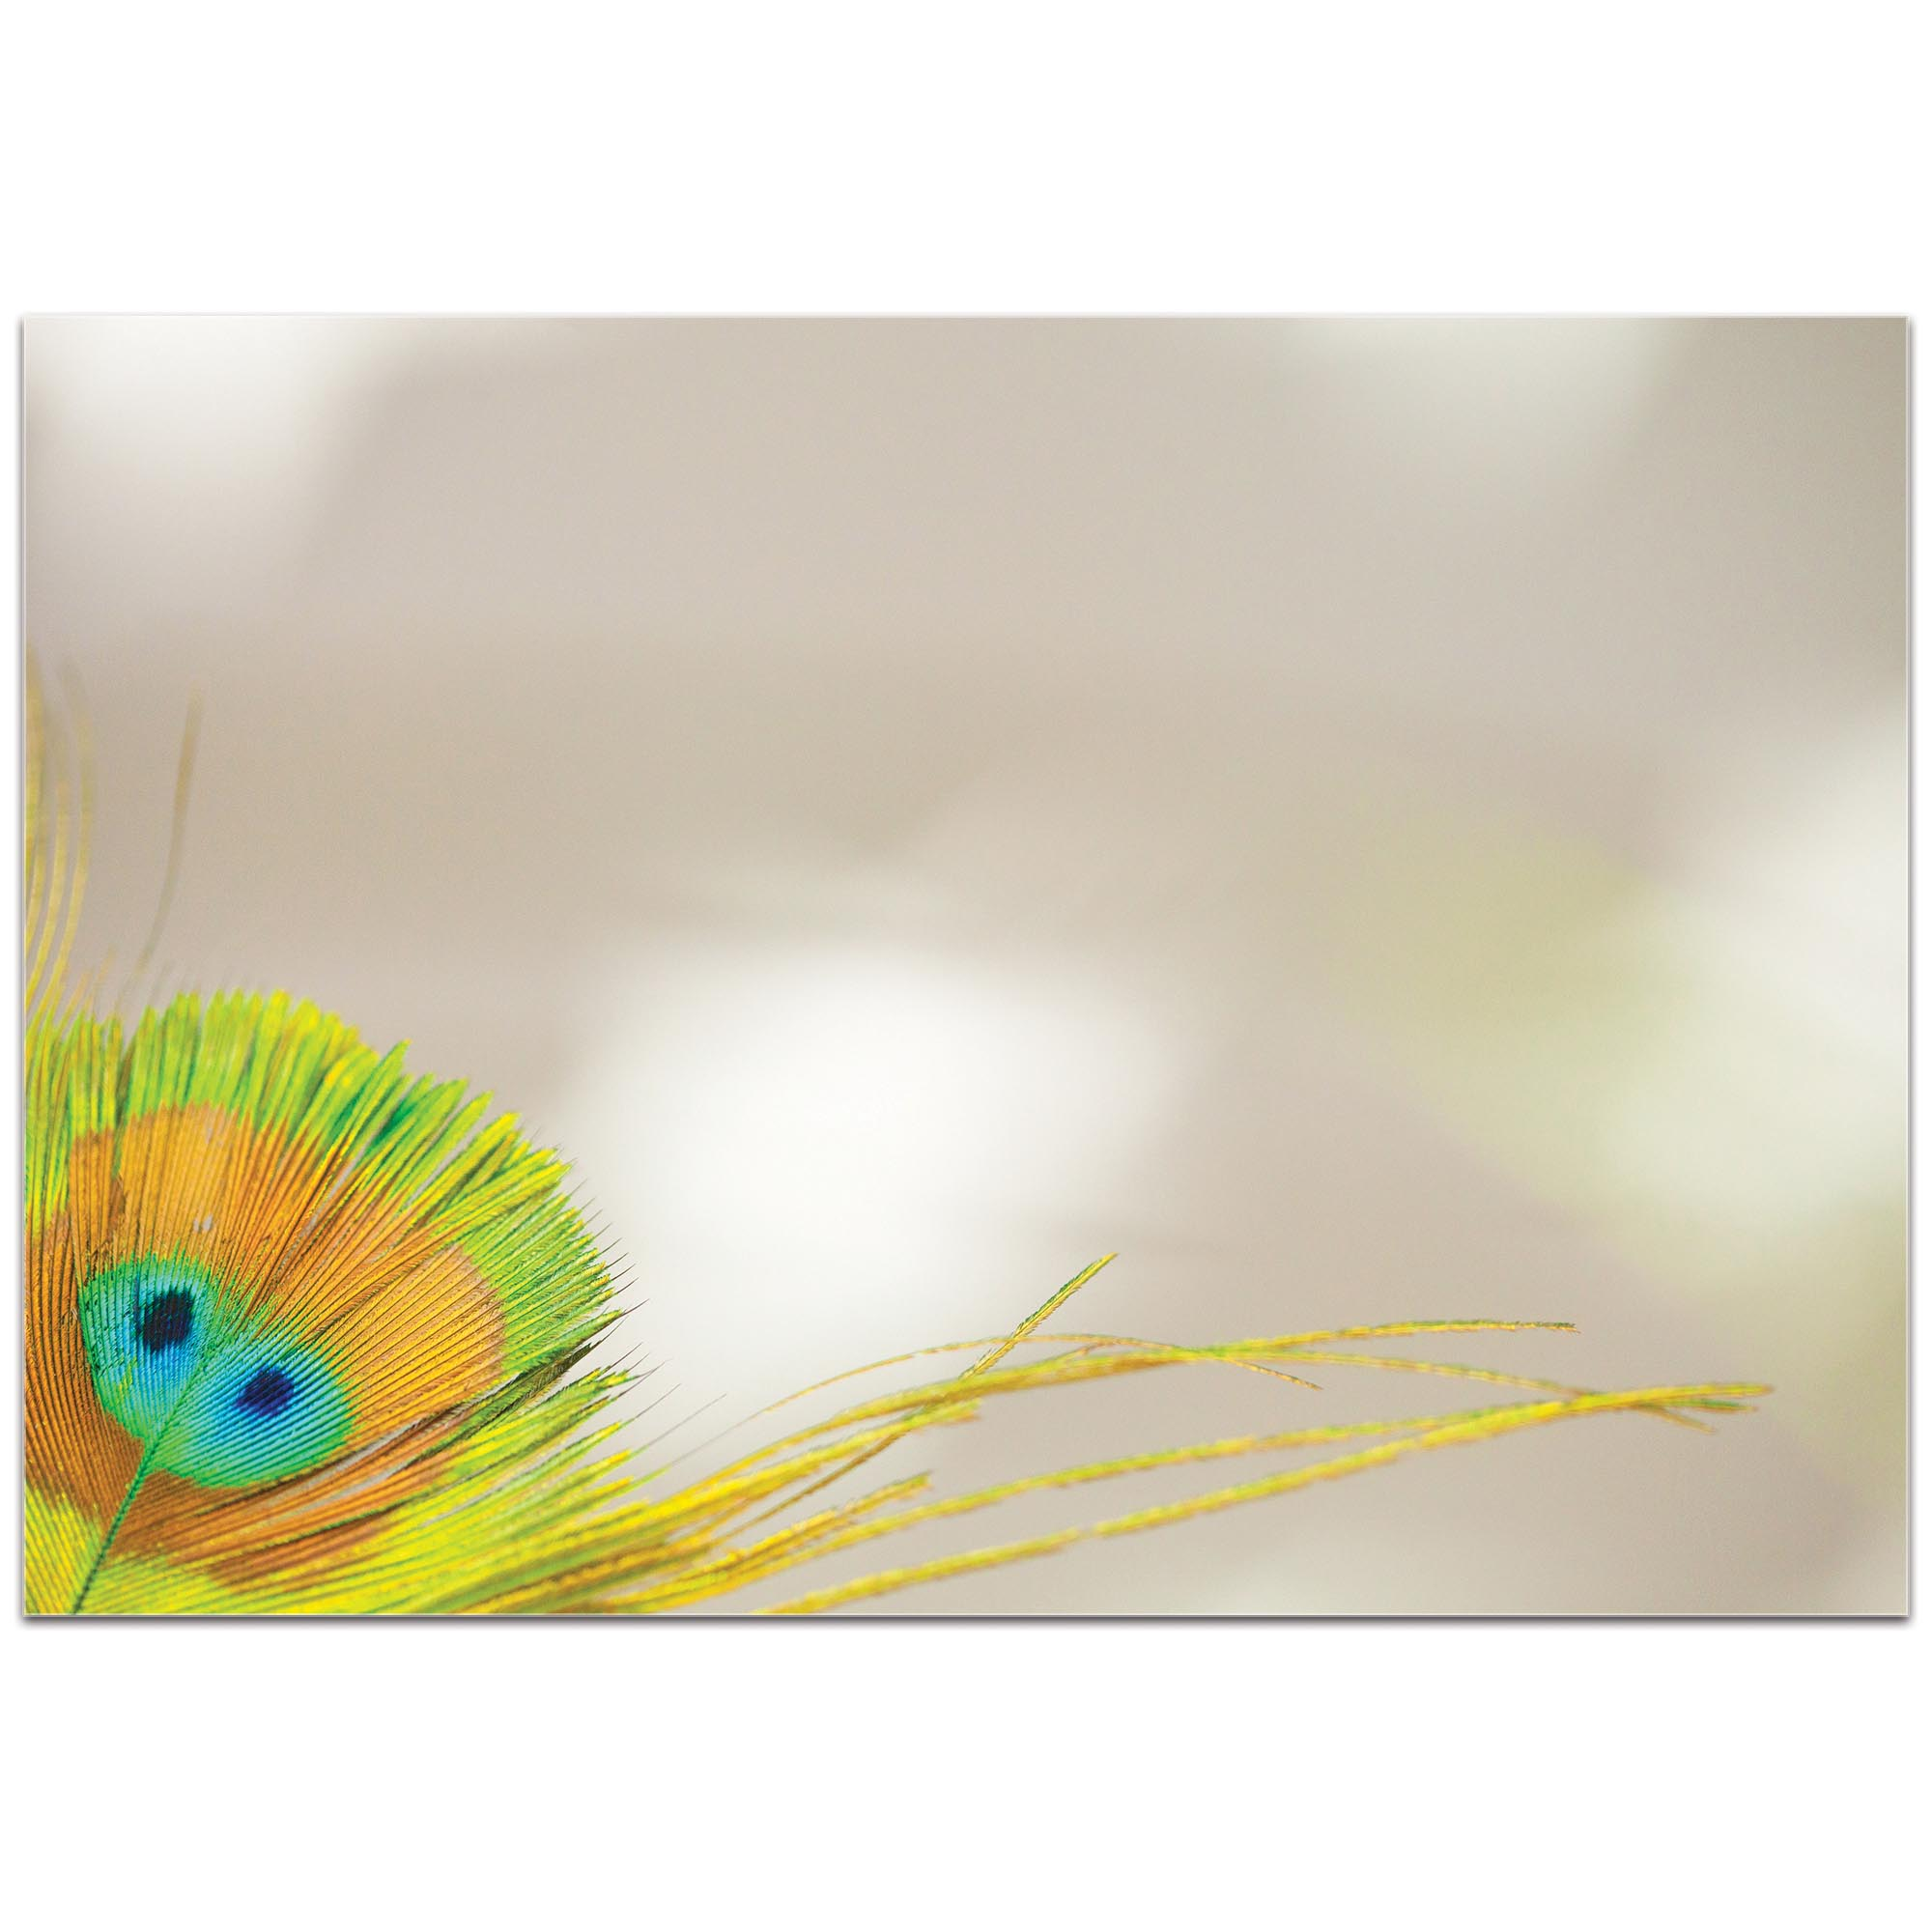 Contemporary Wall Art 'Peacock Corner' - Wildlife Decor on Metal or Plexiglass - Image 2